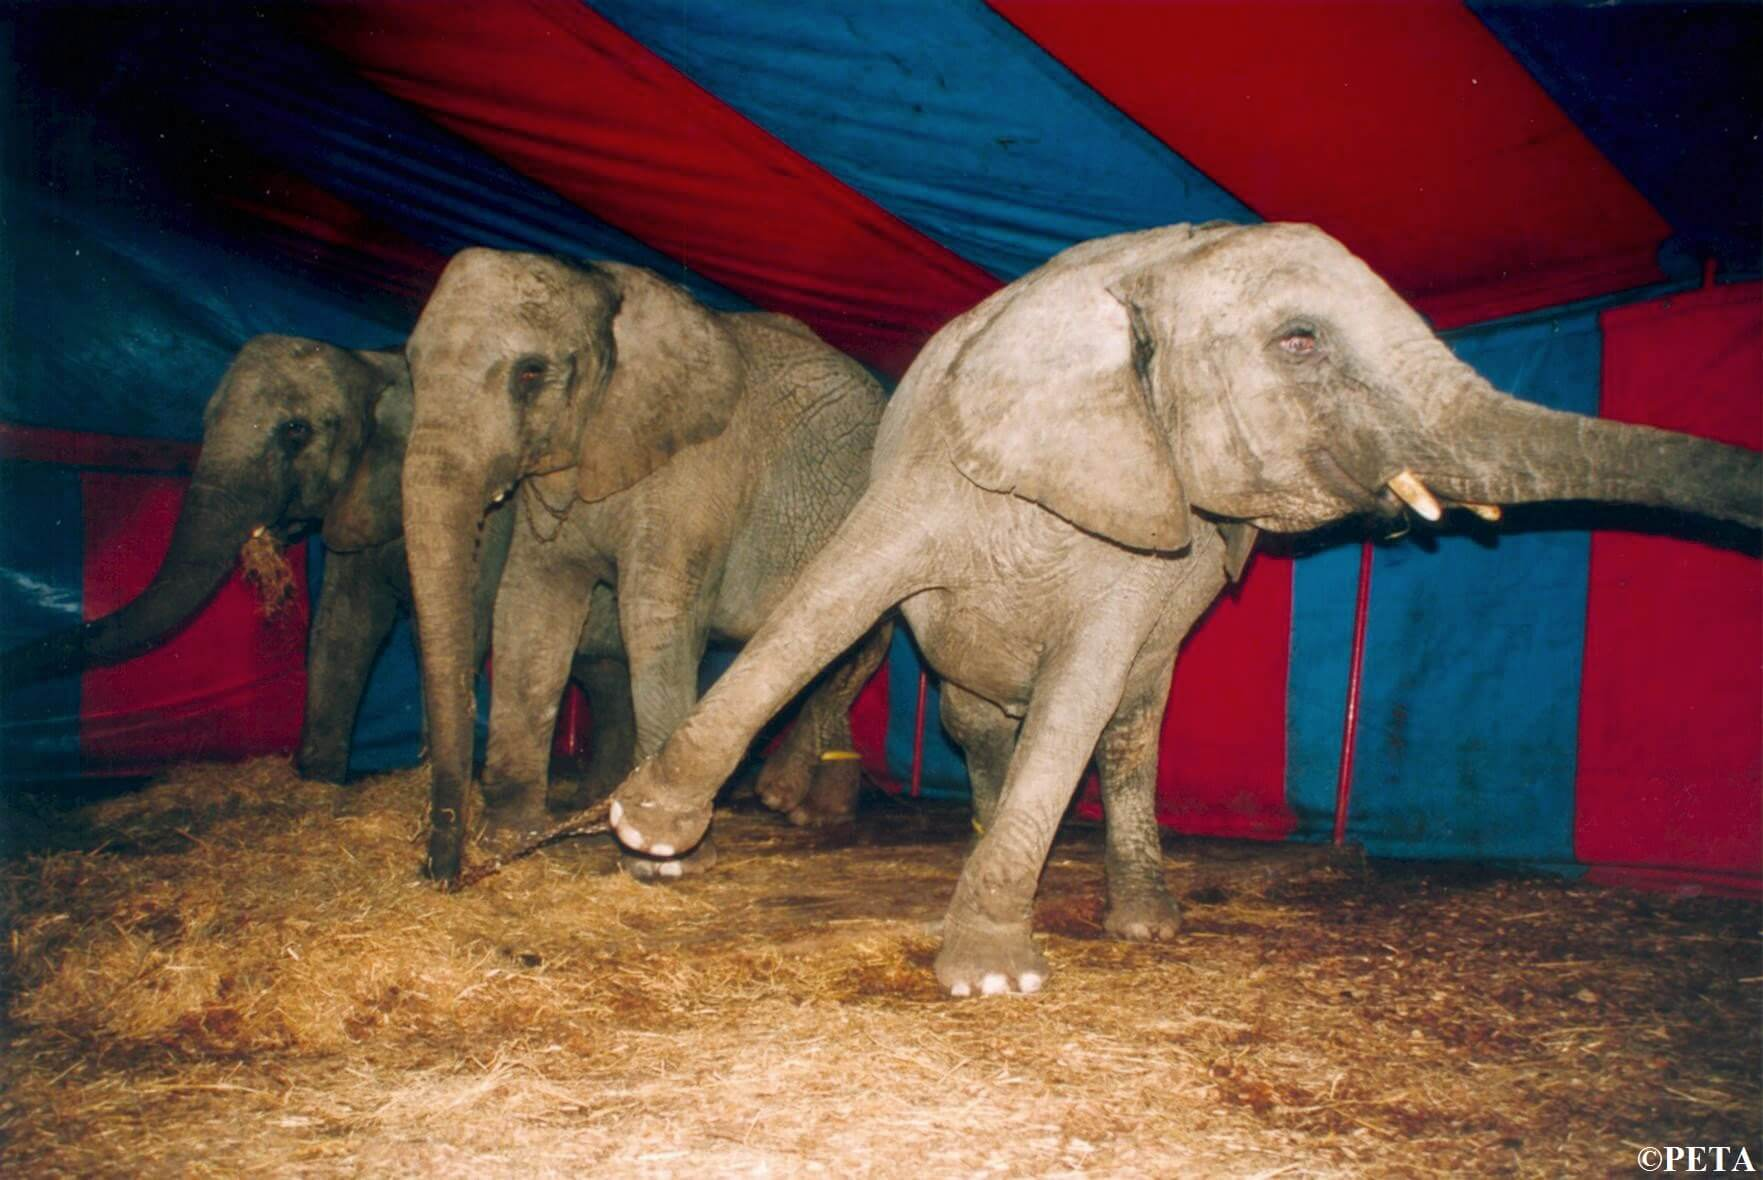 Animals Used for Entertainment